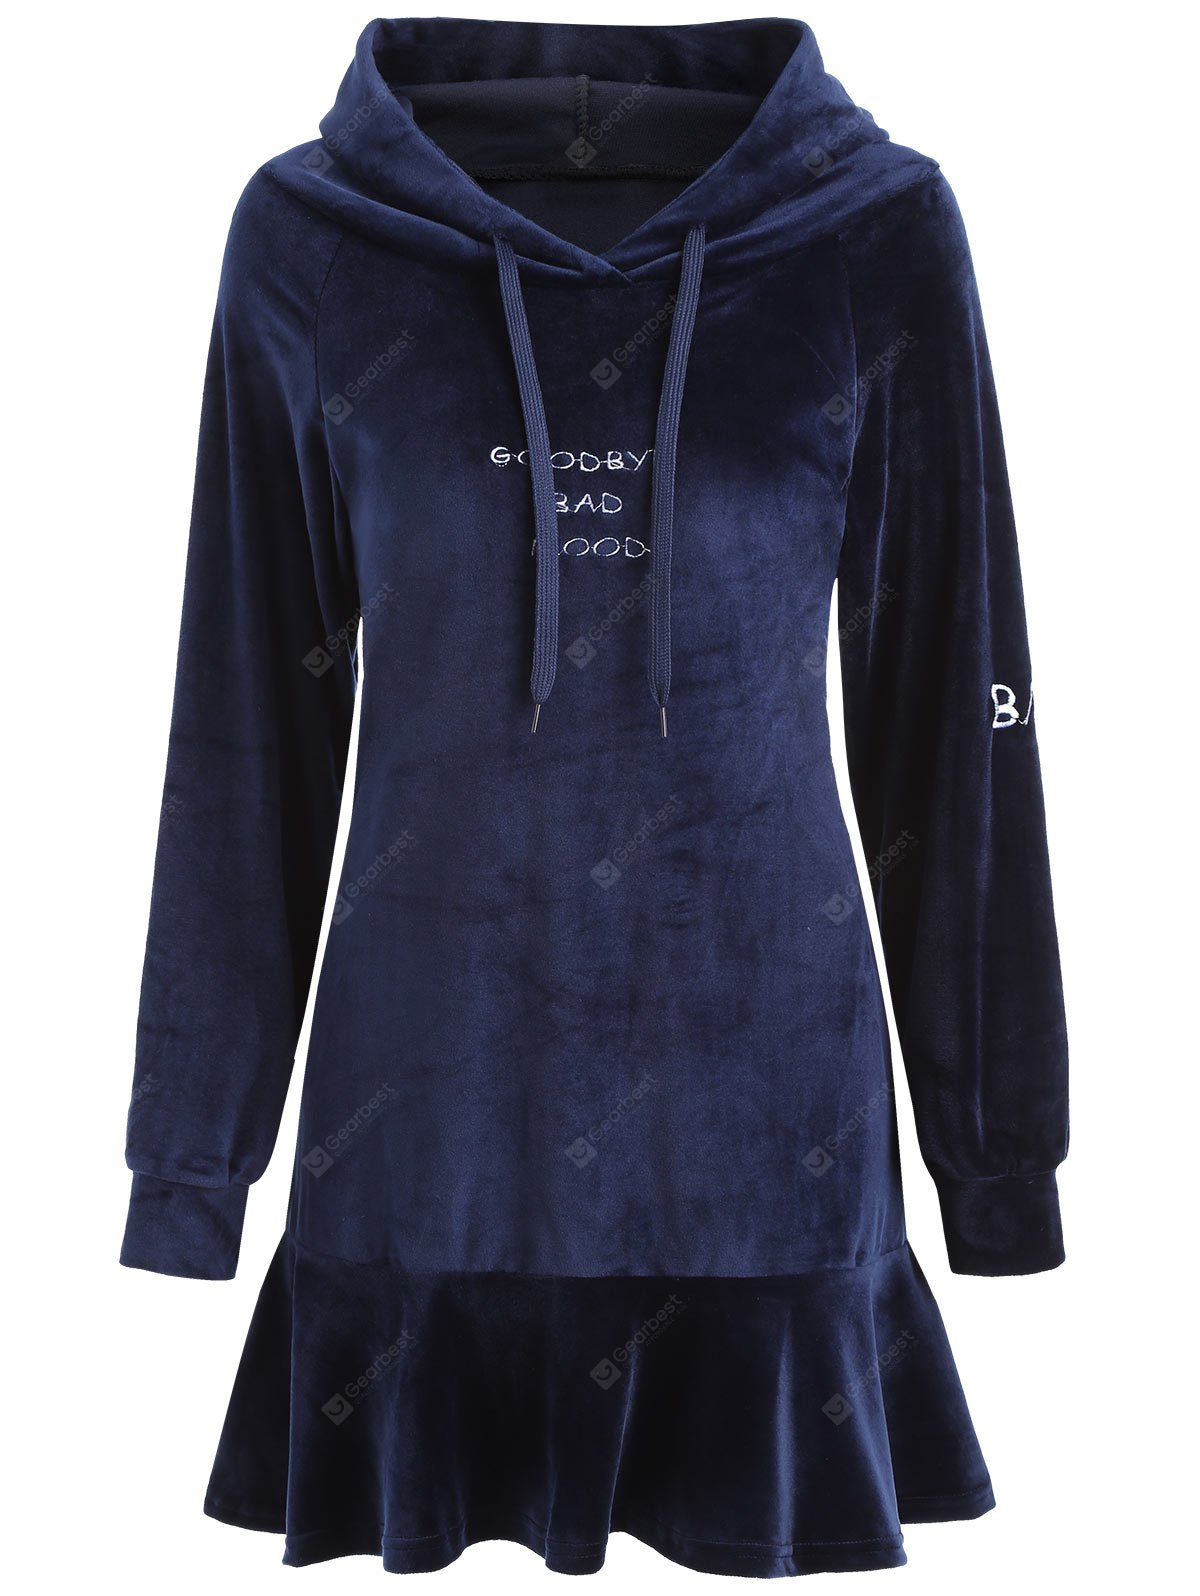 Letter Patched Hooded Velvet Dress